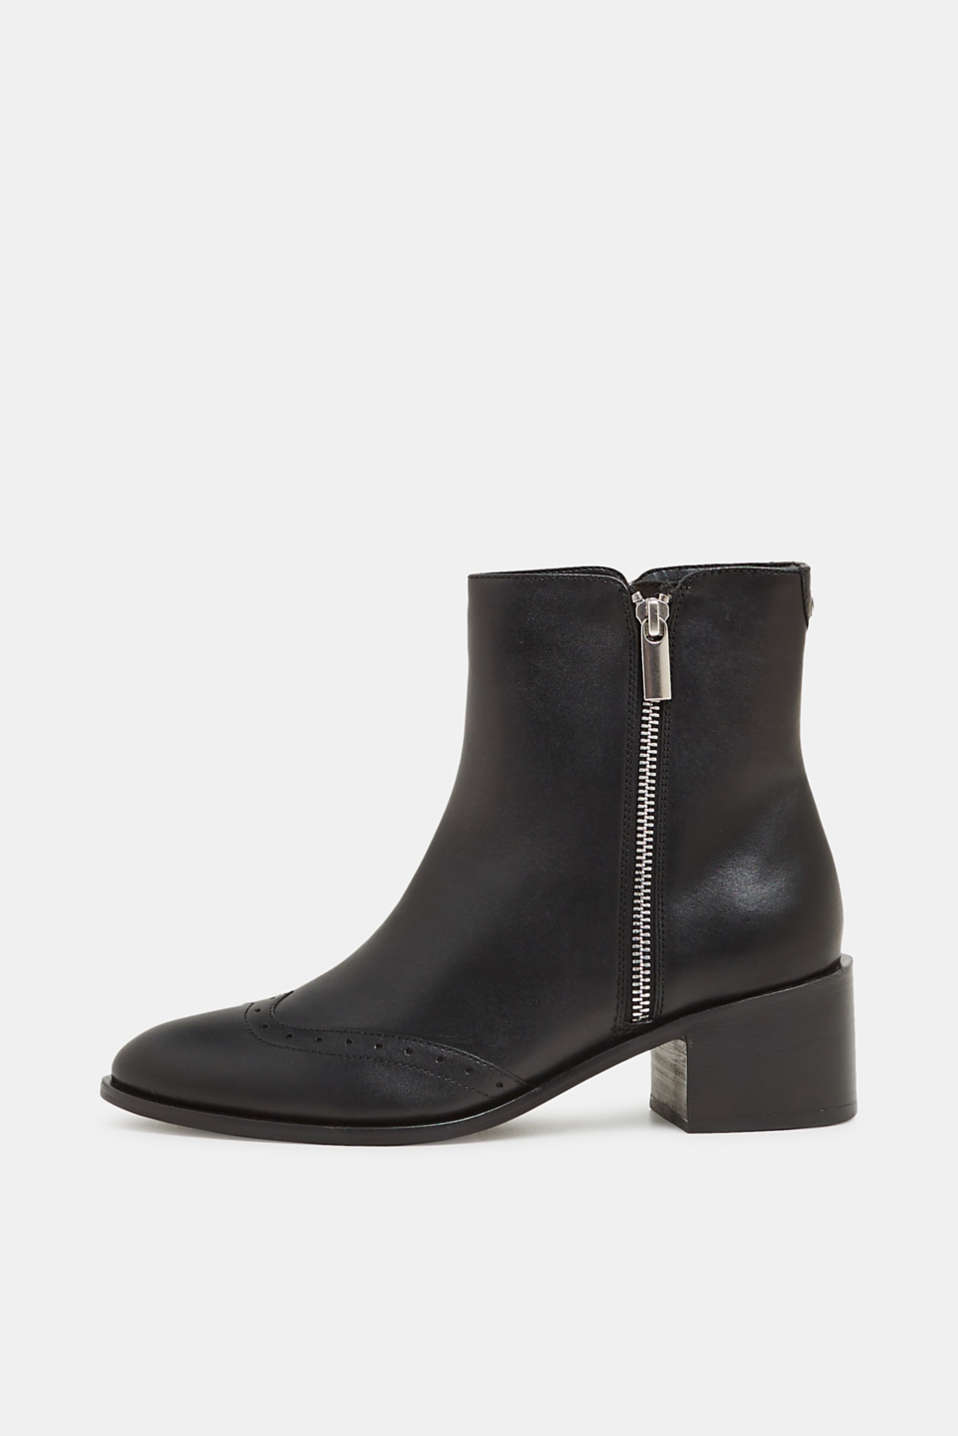 Boots with a brogue pattern, made of leather, BLACK, detail image number 0